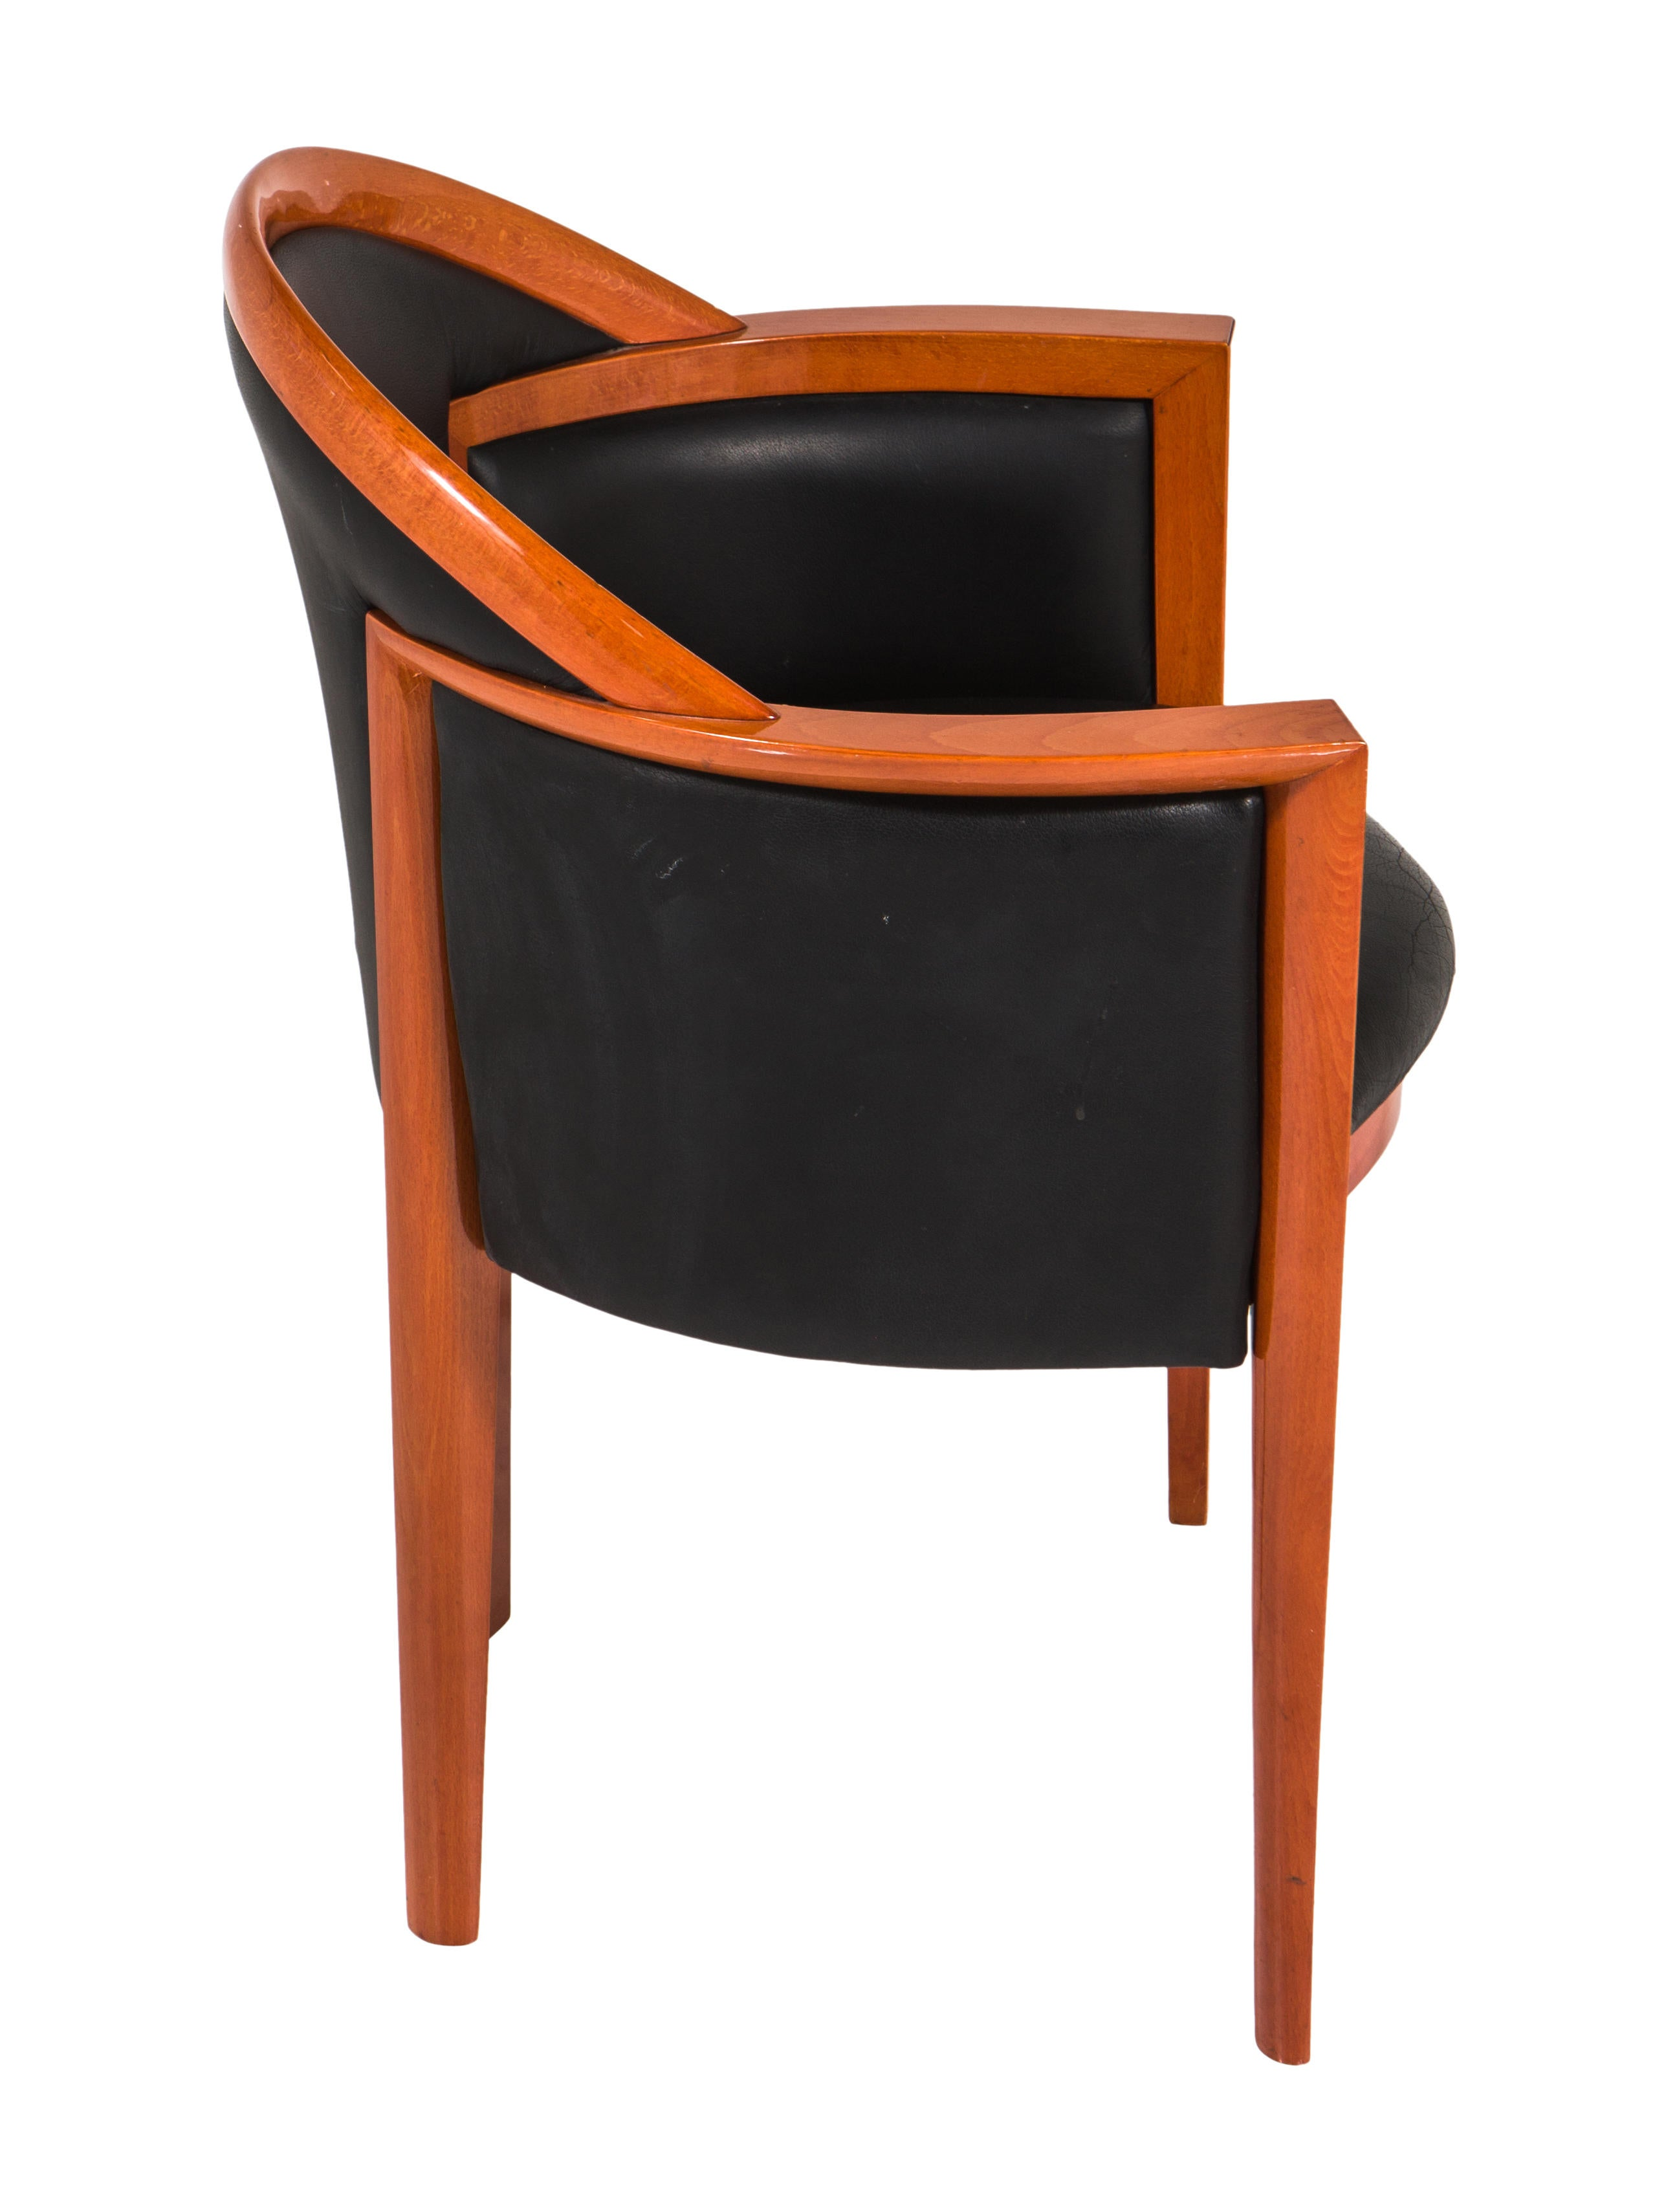 Roche bobois mid century modern wood and black leather for Mid century modern wood furniture